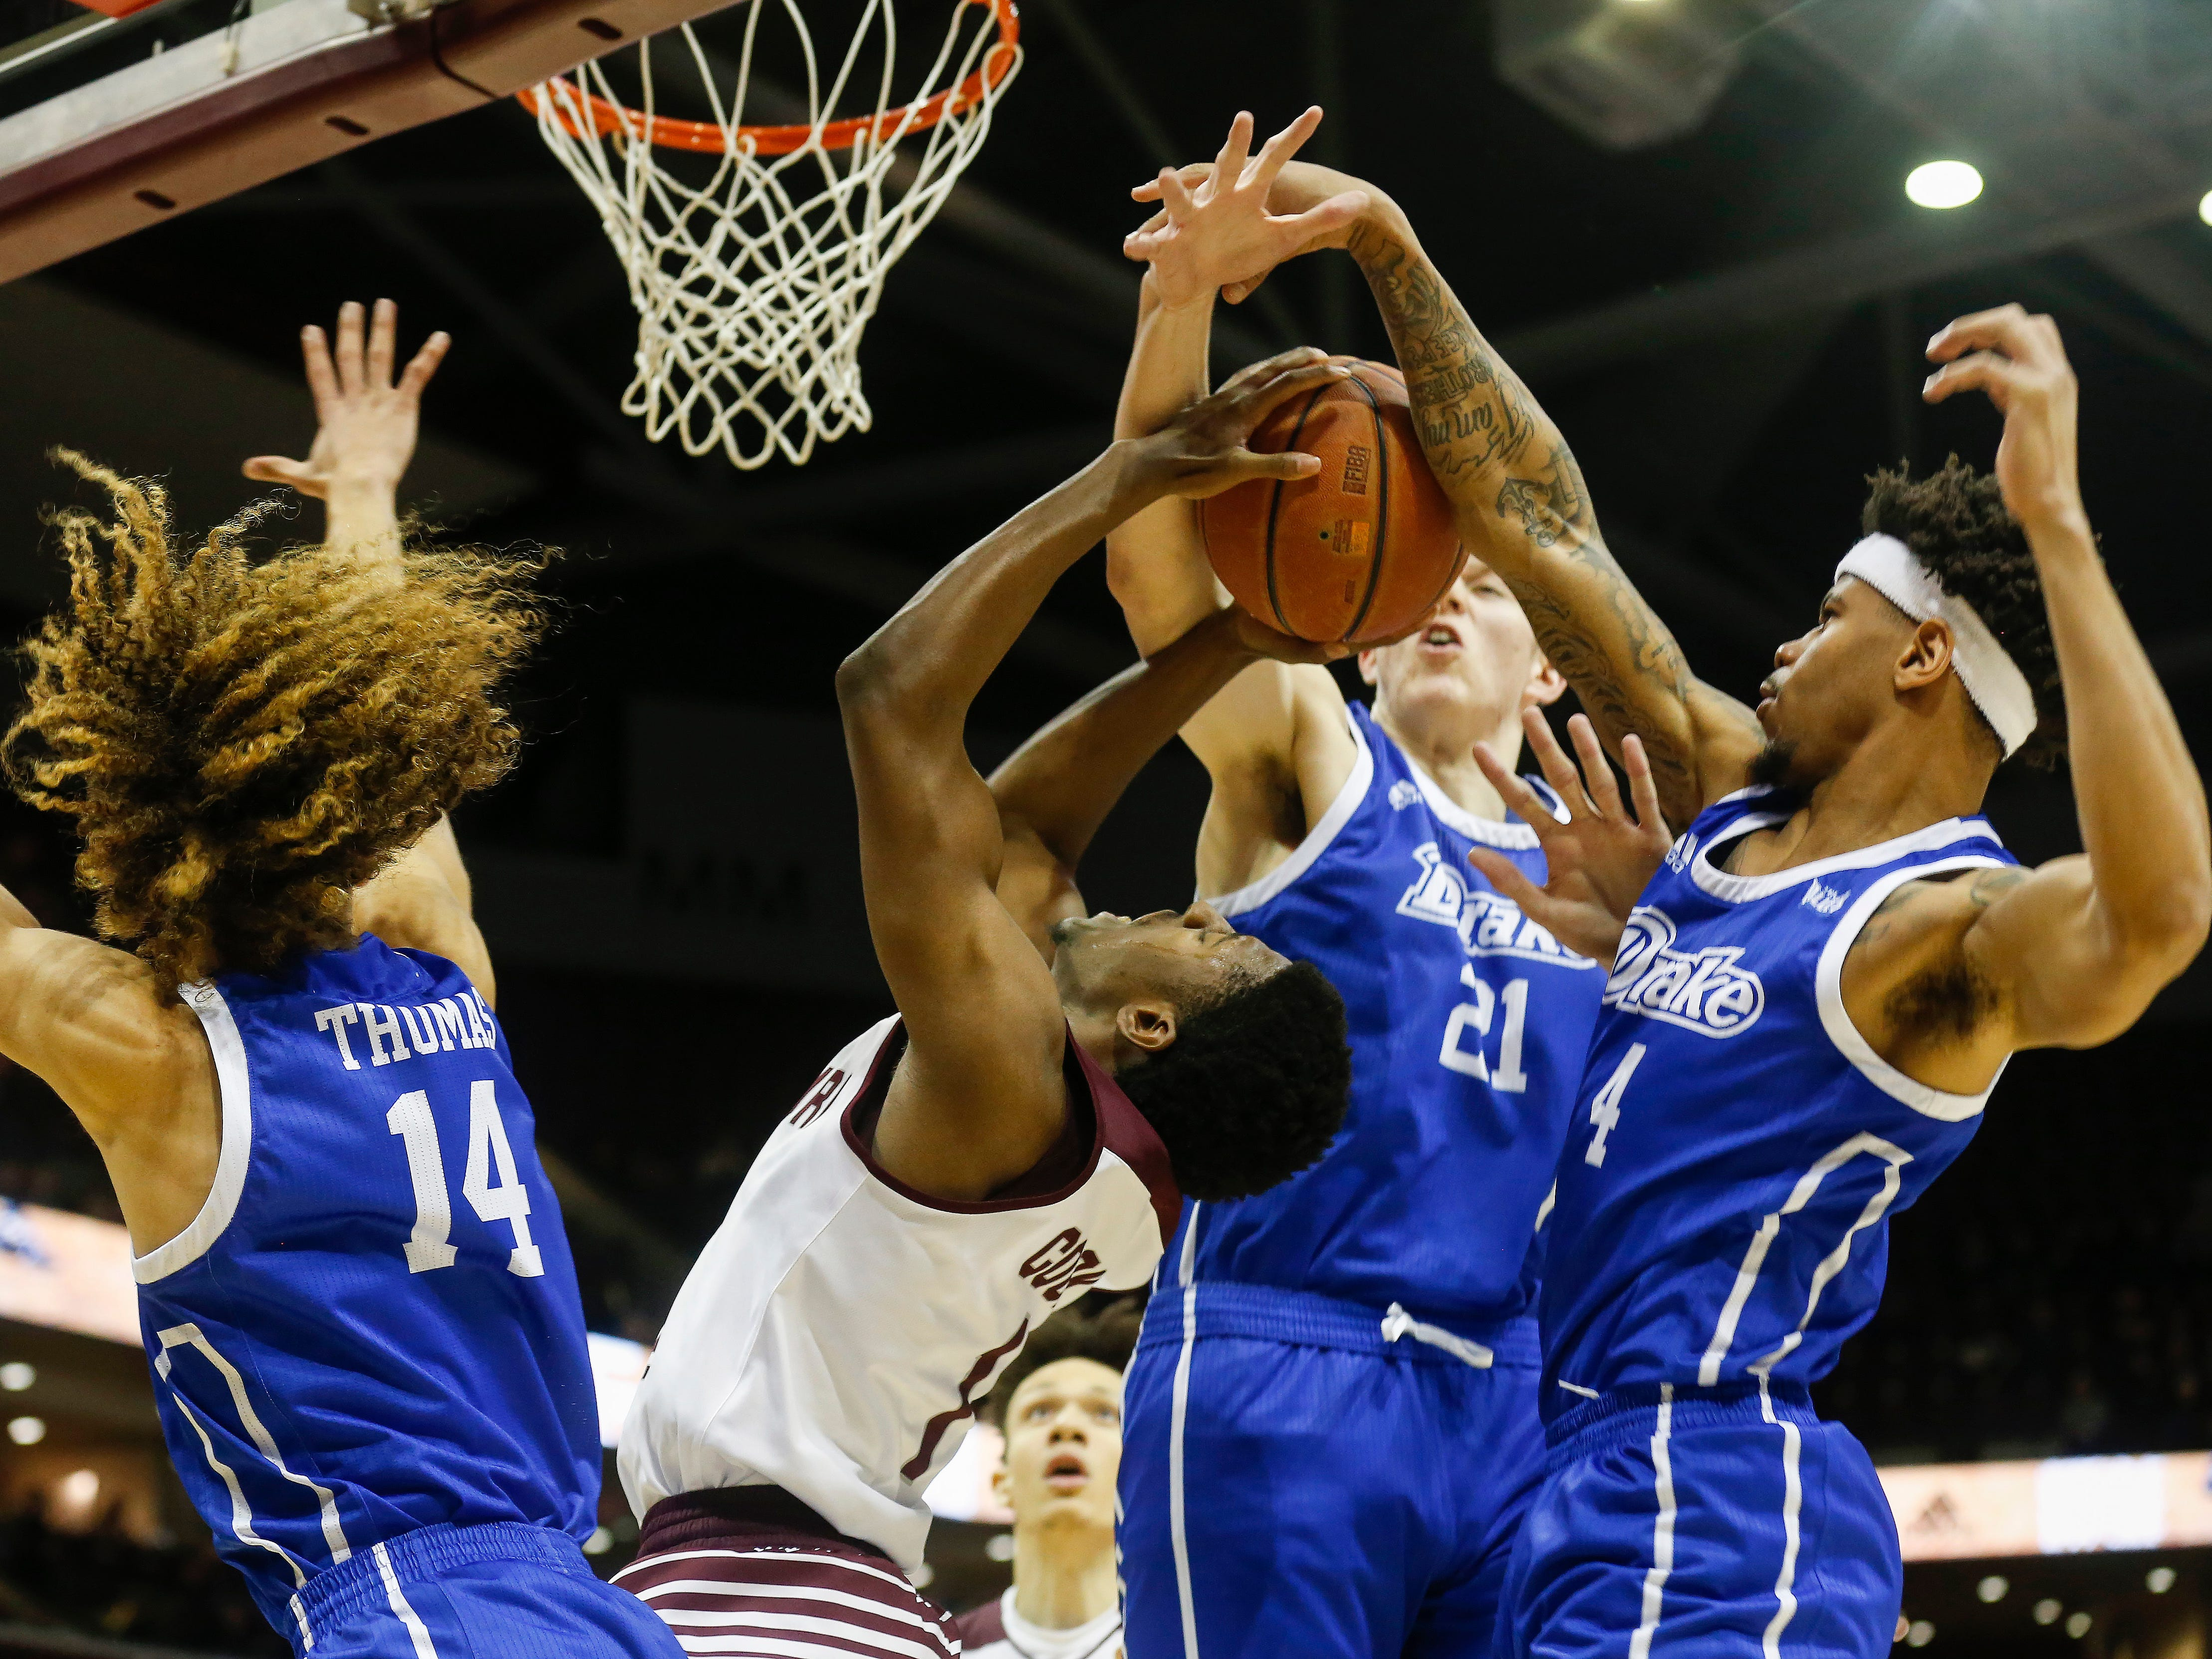 Keandre Cook is swarmed by Drake defenders during Missouri State's game at JQH Arena on Saturday, Mar. 2, 2019.